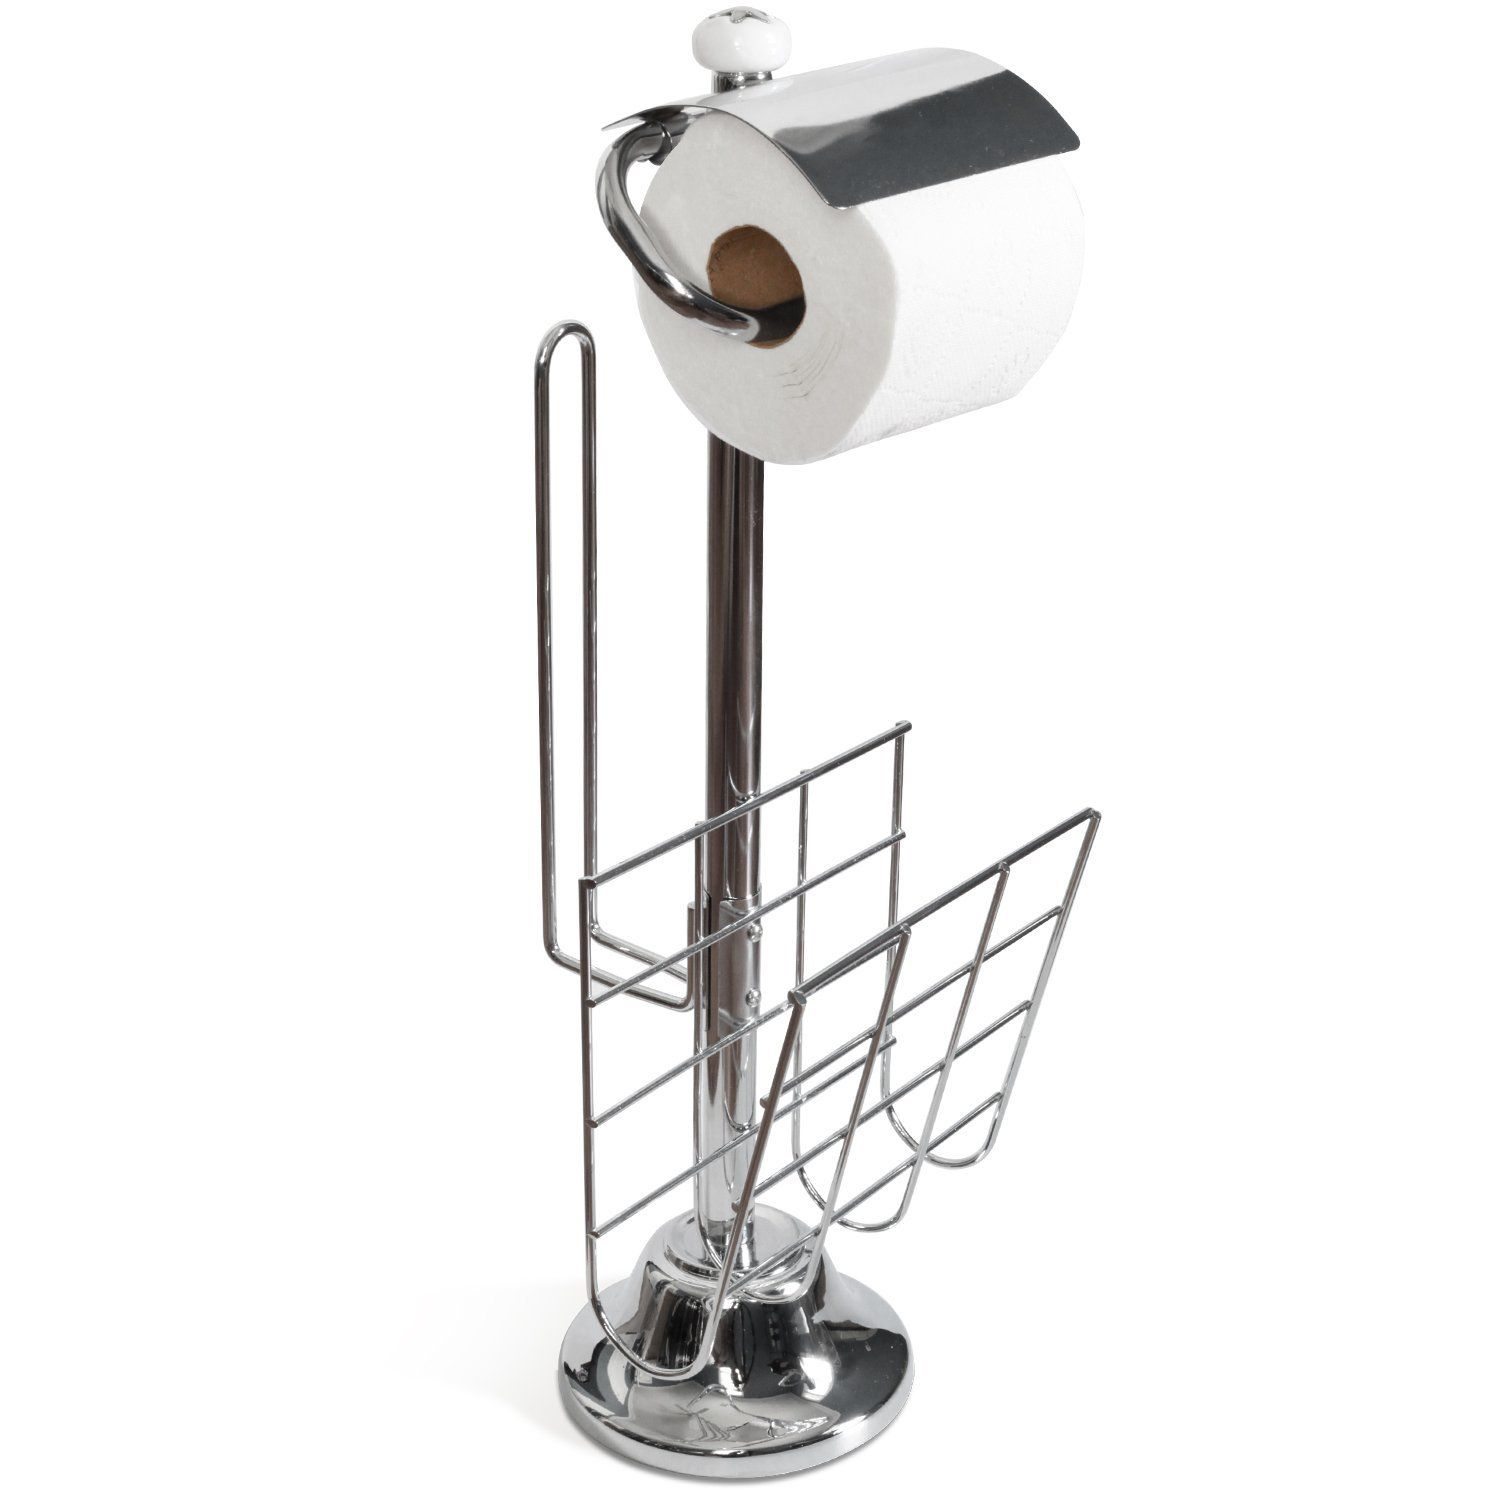 Toilettree Products Toilet Caddy Tissue Dispenser With Magazine Rack Our Elegan Toilet Paper Holder Free Standing Toilet Paper Holder Toilet Paper Roll Holder